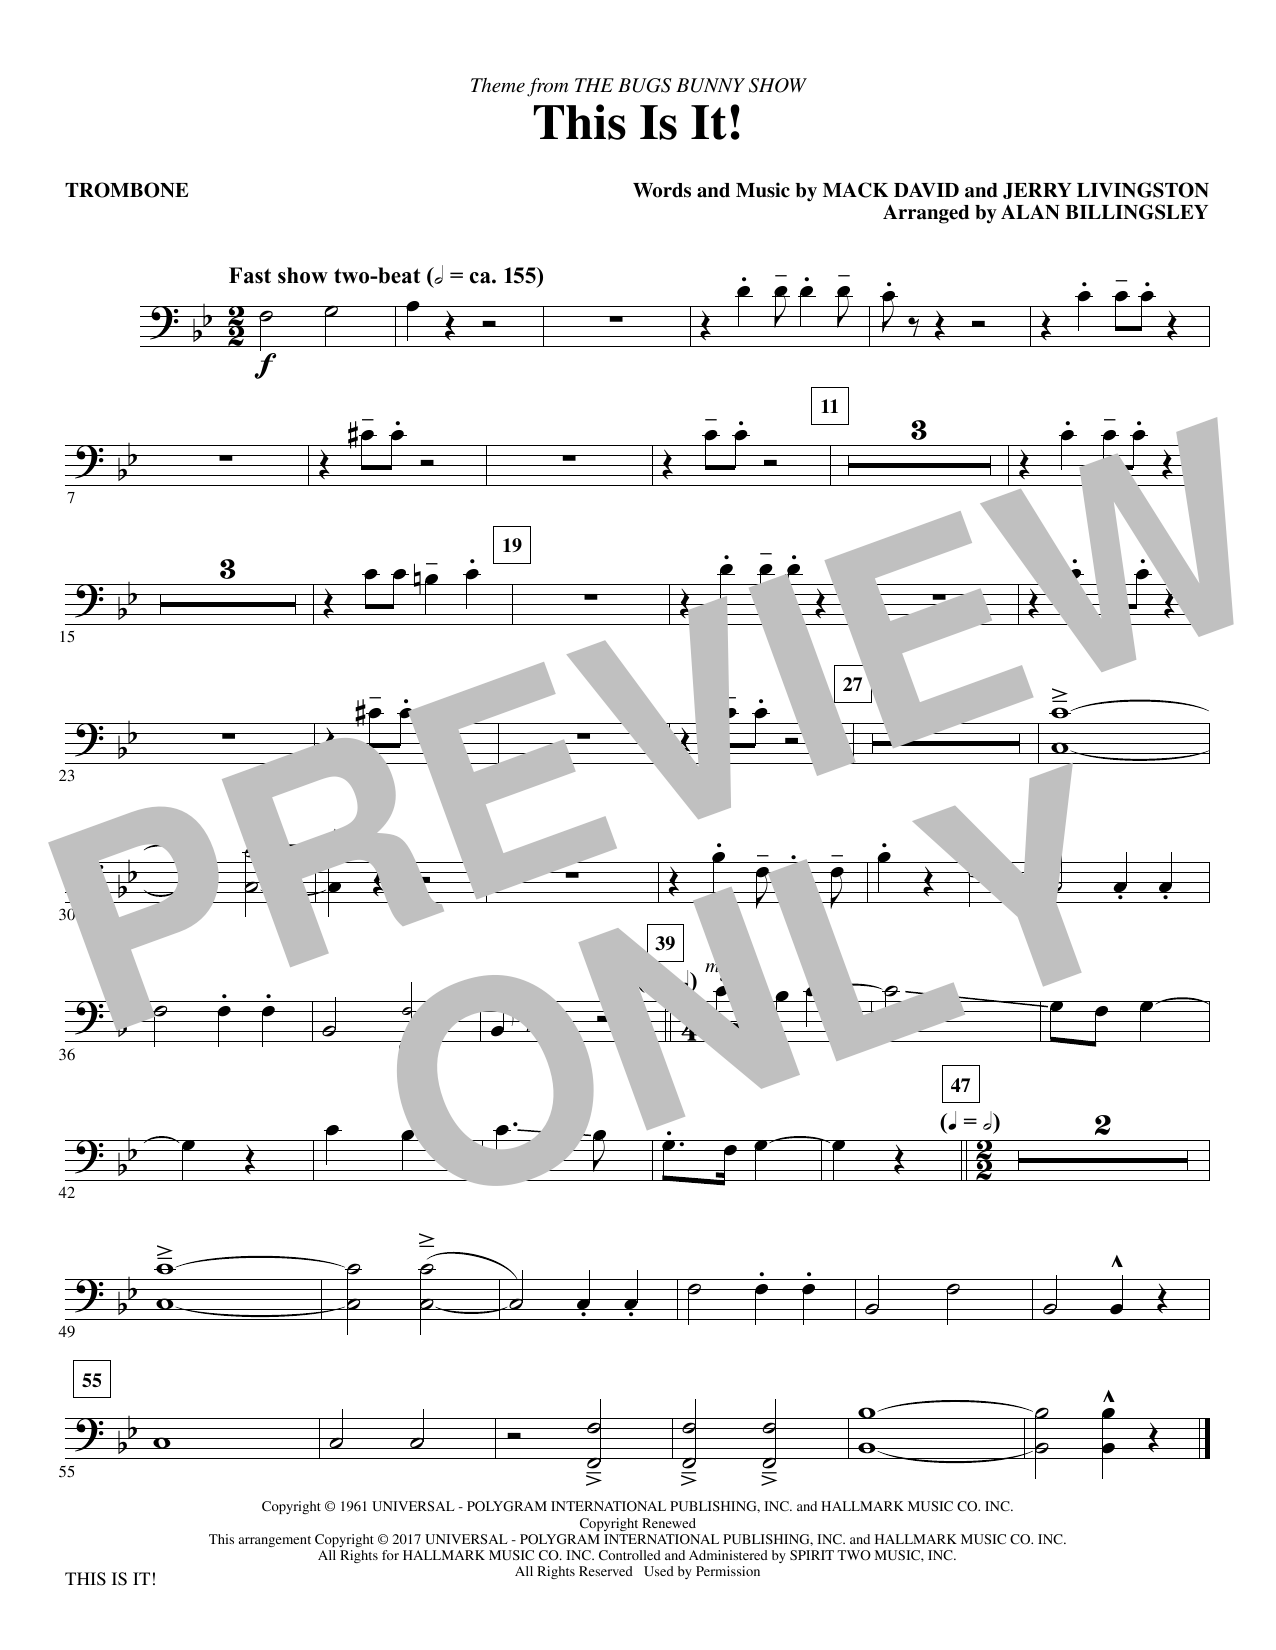 Mack David & Jerry Livingston This Is It! (arr. Alan Billingsley) - Trombone sheet music notes and chords. Download Printable PDF.